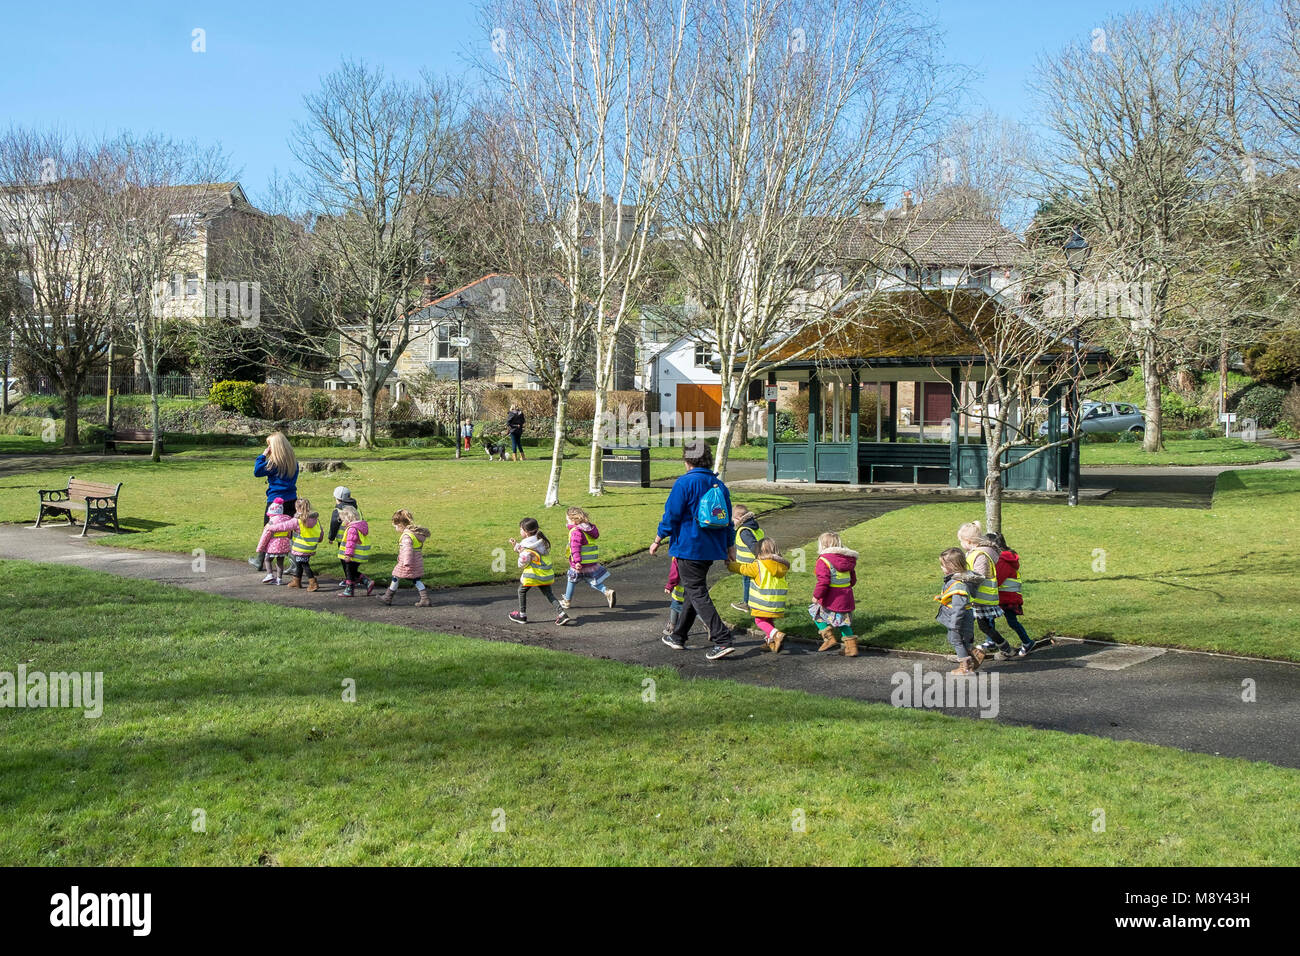 Children from a nursery and their teachers walking though Trenance Gardens in Newquay Cornwall. - Stock Image